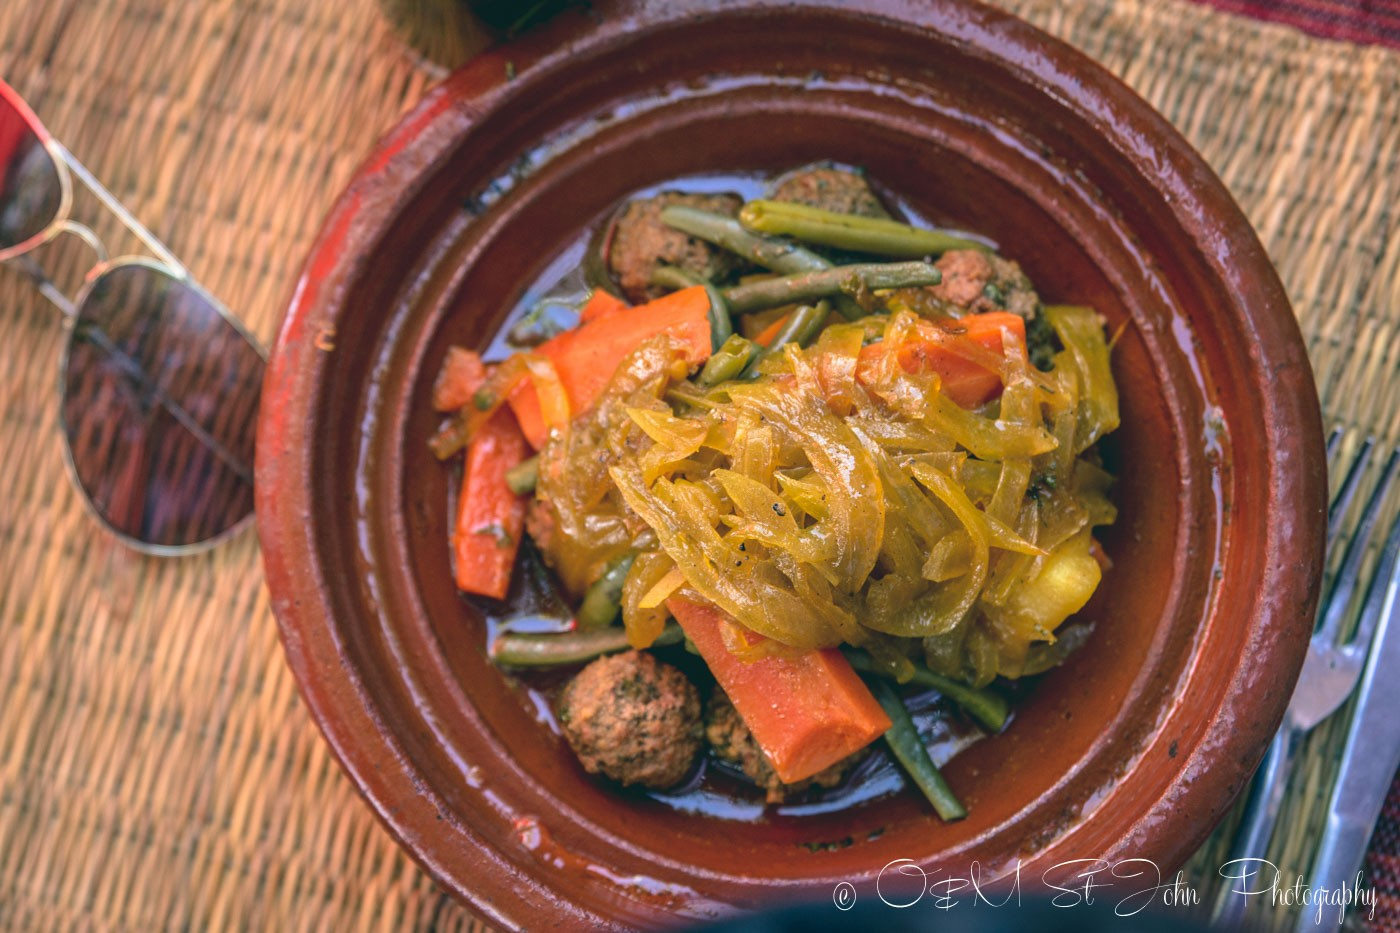 Moroccan food: Beef and vegetable tagine